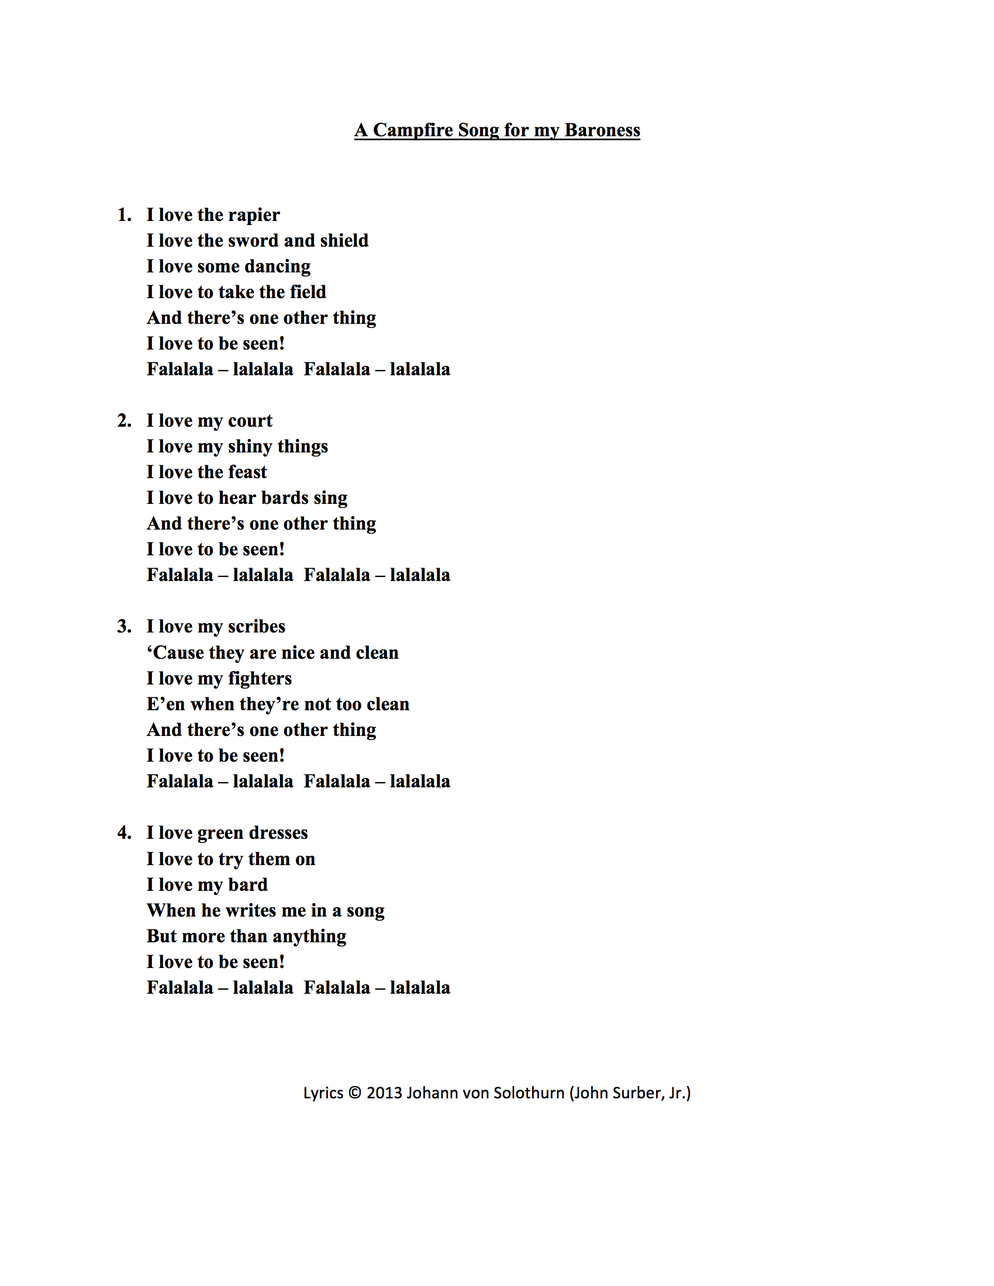 Campfire song guitar chords image collections guitar chords examples a campfire song for my baroness johann von solothurn lyric sheet for a campfire song for hexwebz Choice Image